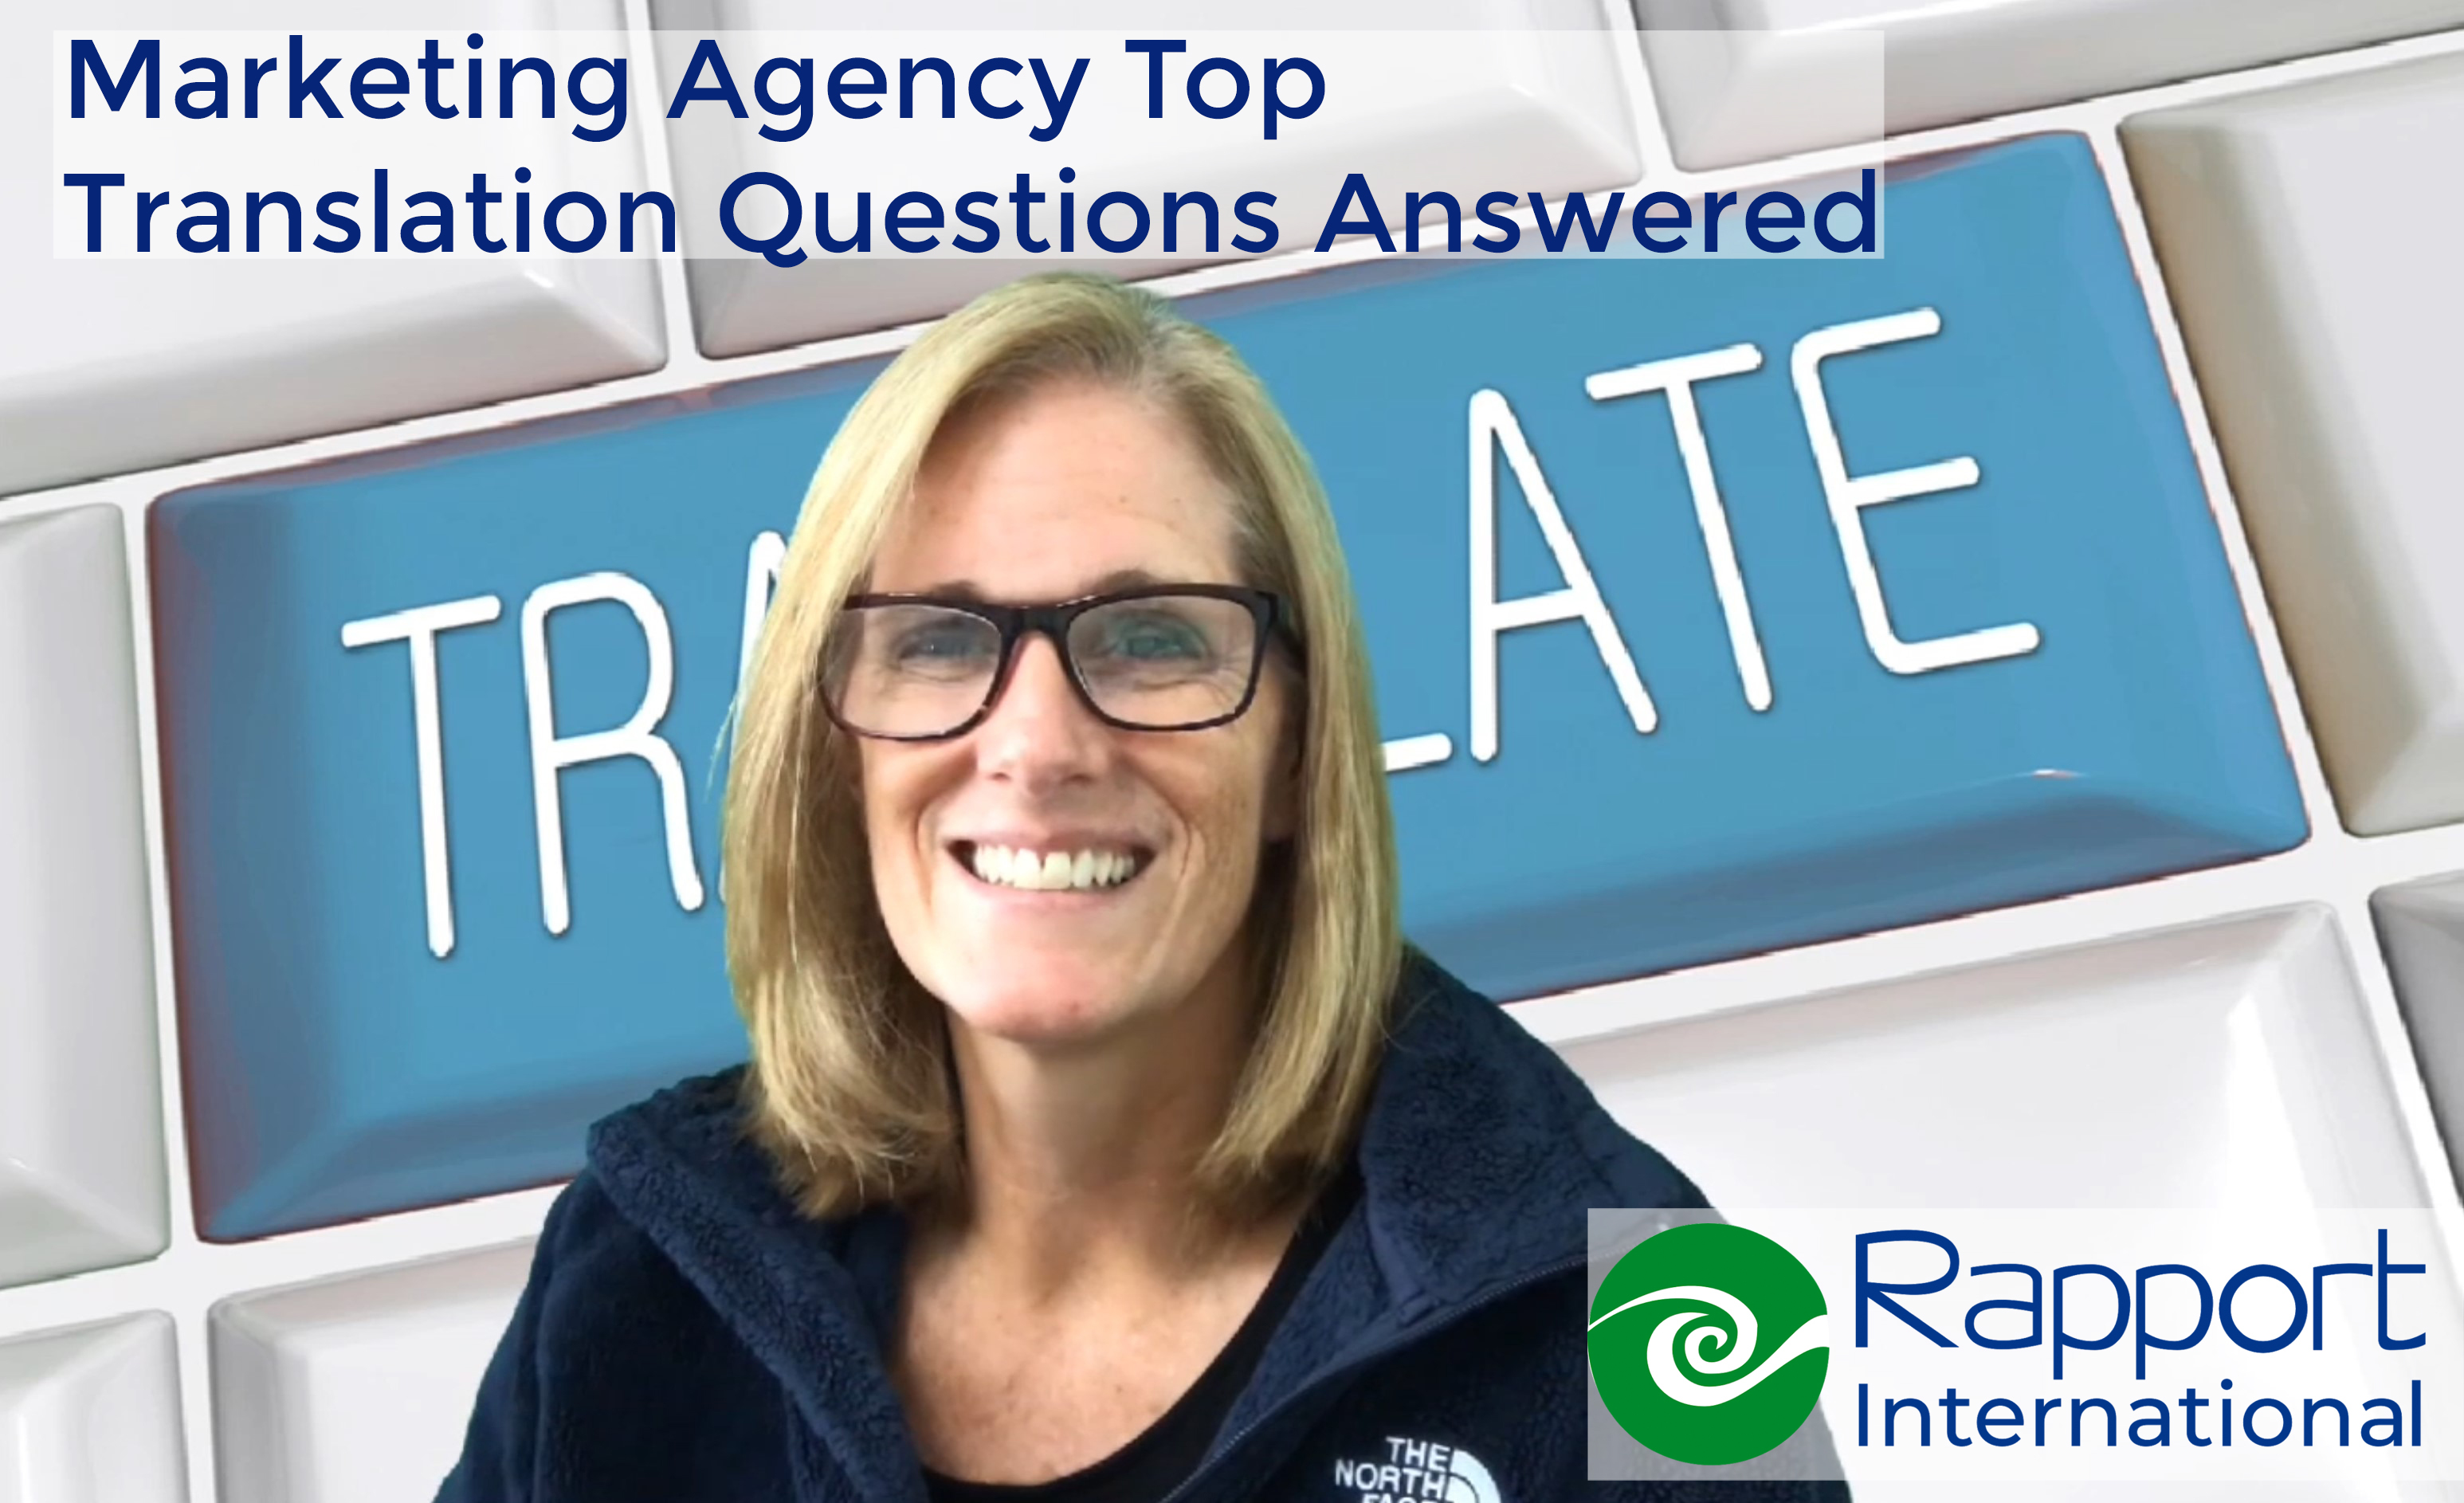 Marketing Agency Top Questions Answered 2